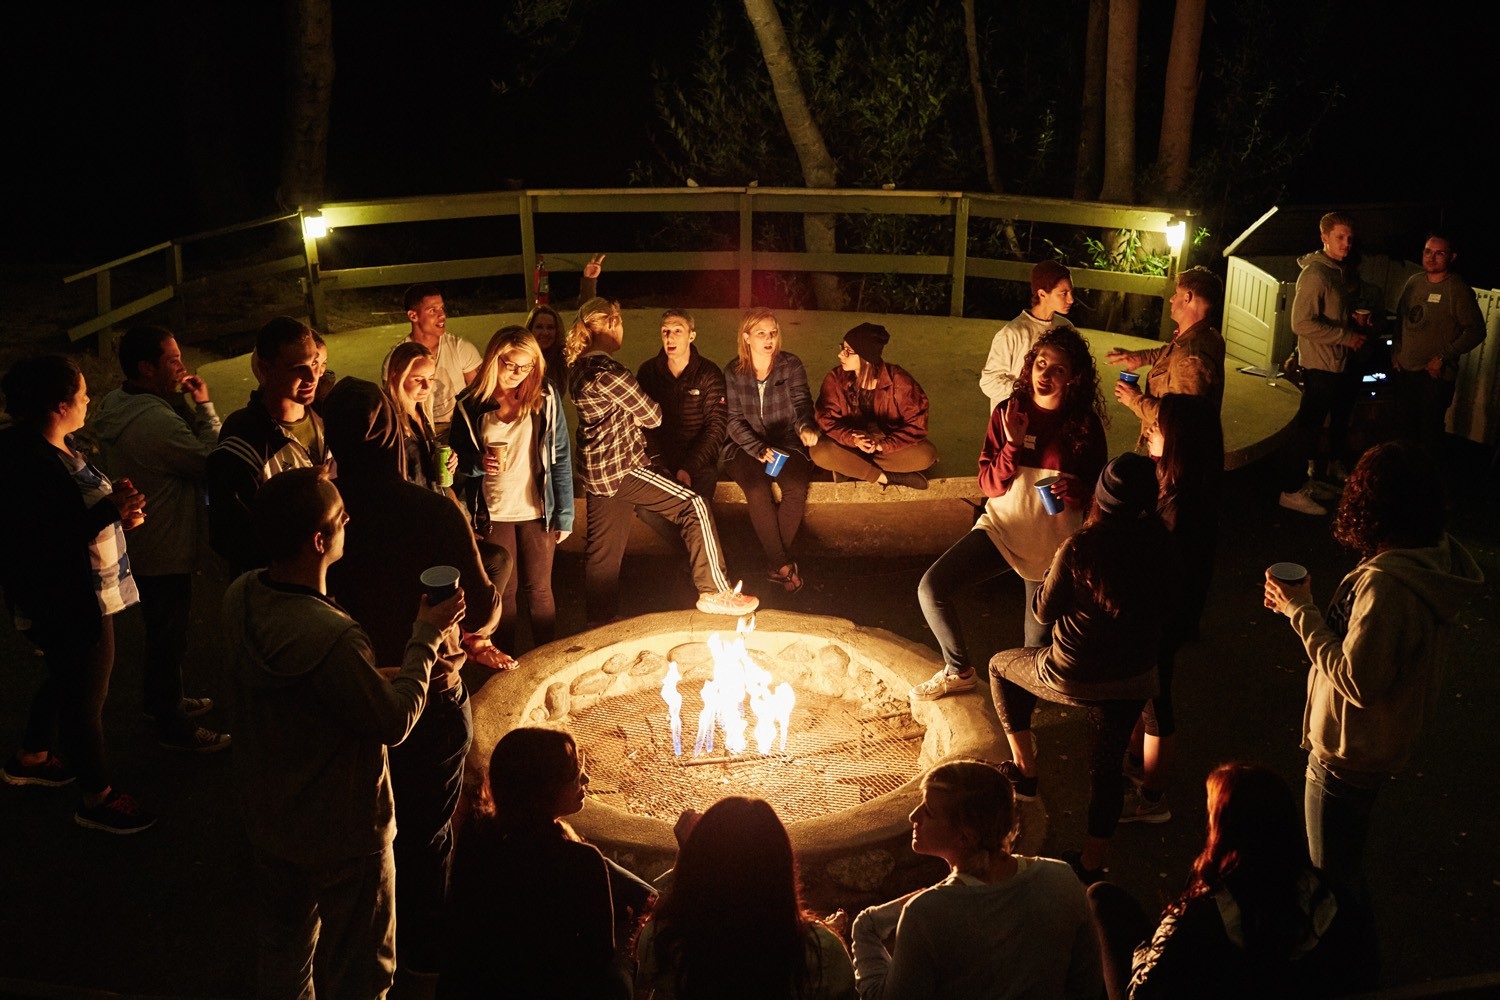 Hanging out by the fire with new friends (Camp No Counselors)